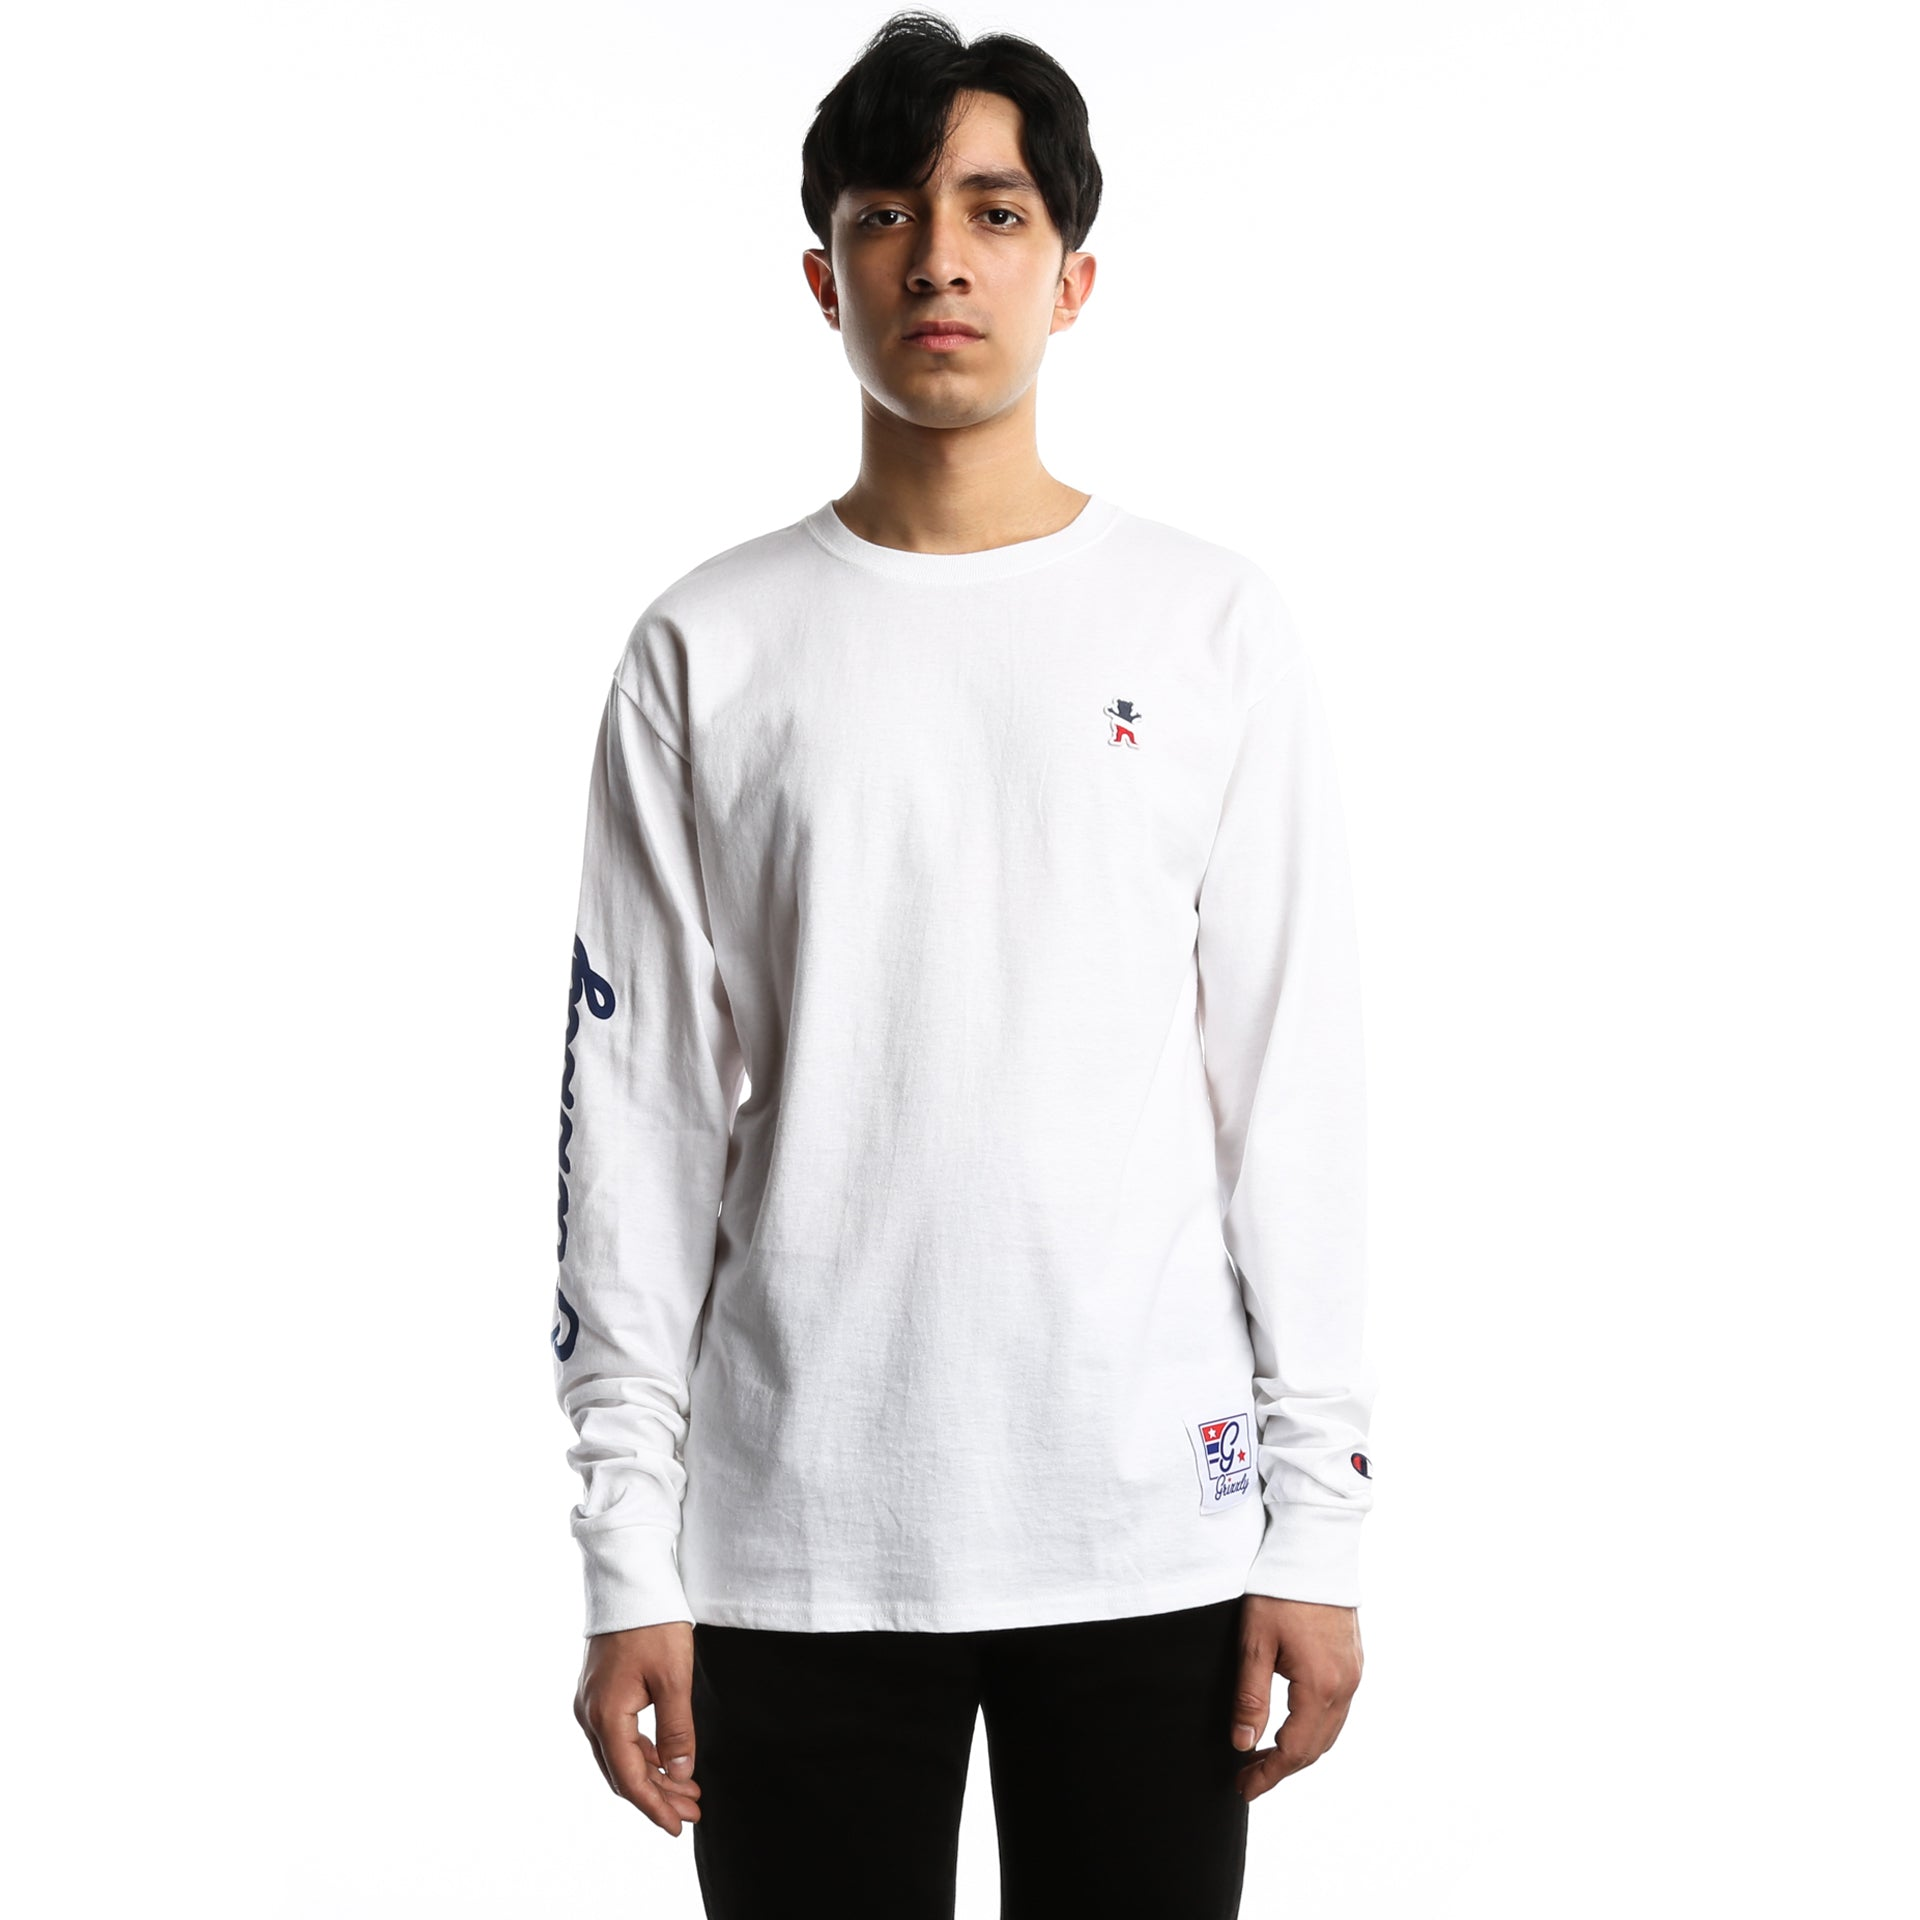 93fdae7037d7 Grizzly x Champion Behind The Arch Long Sleeve Tee - White - New Star